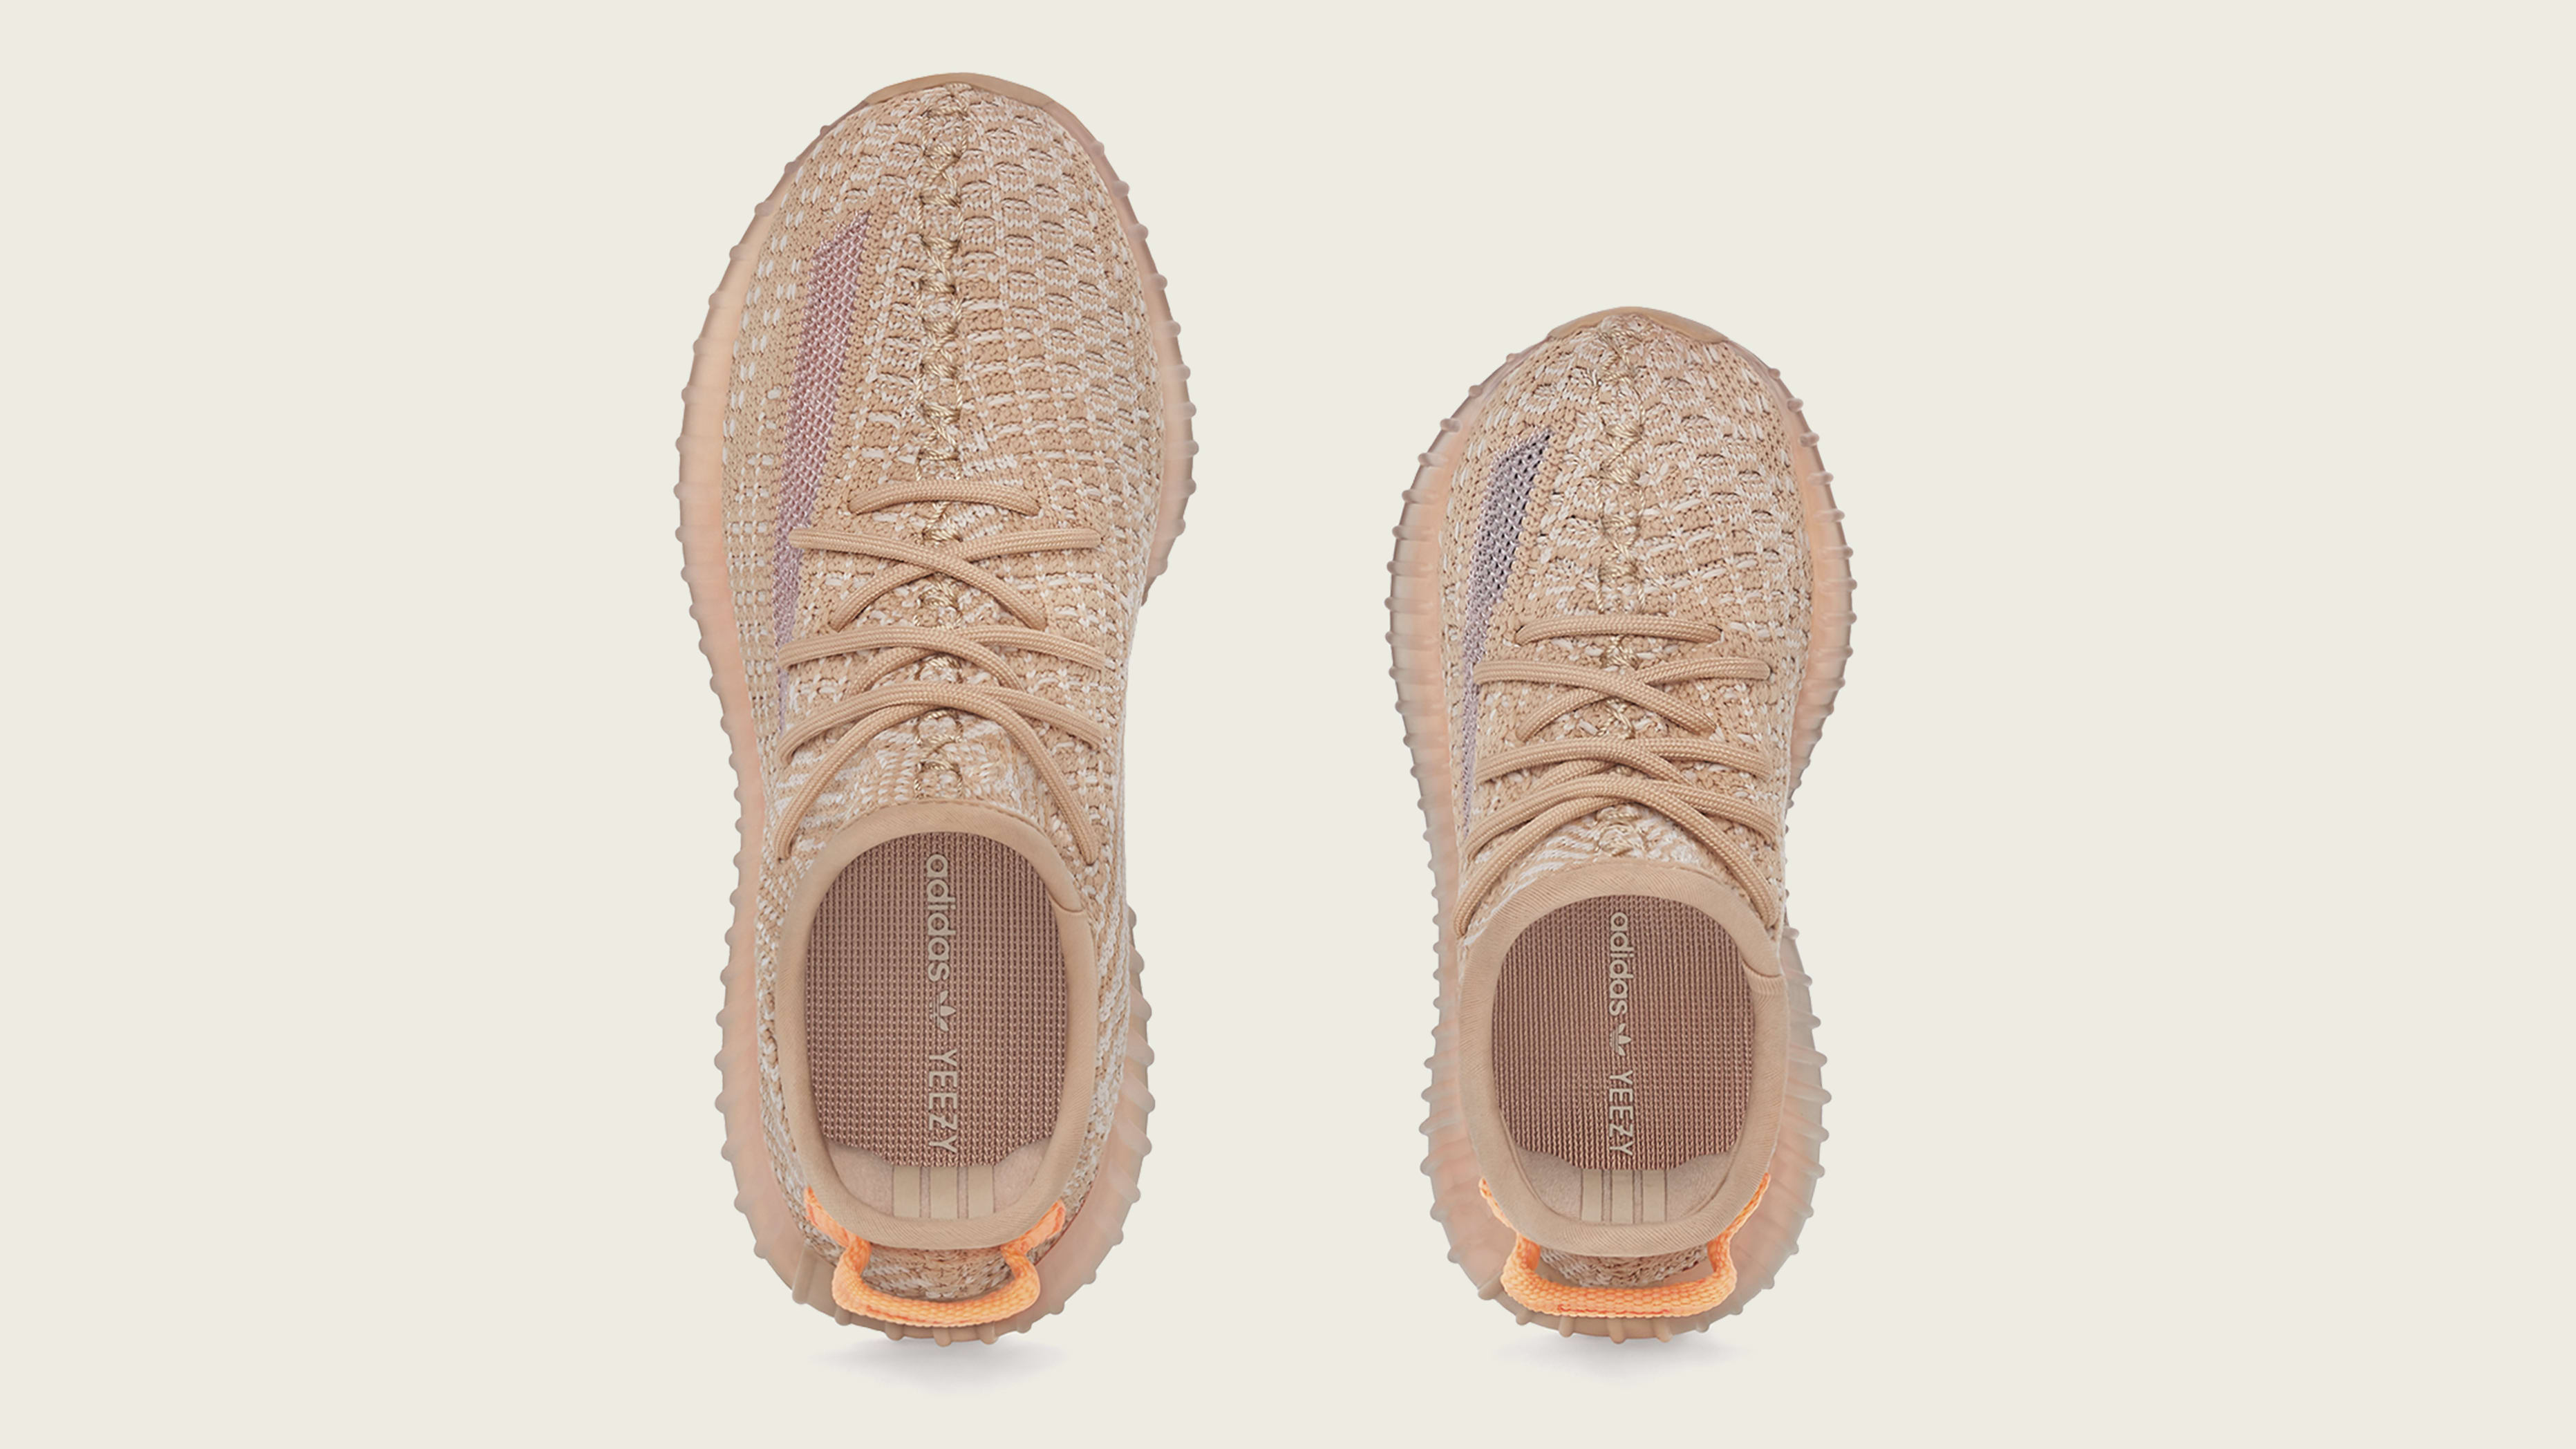 Adidas Yeezy Boost 350 V2 'Clay' Kids (Top)